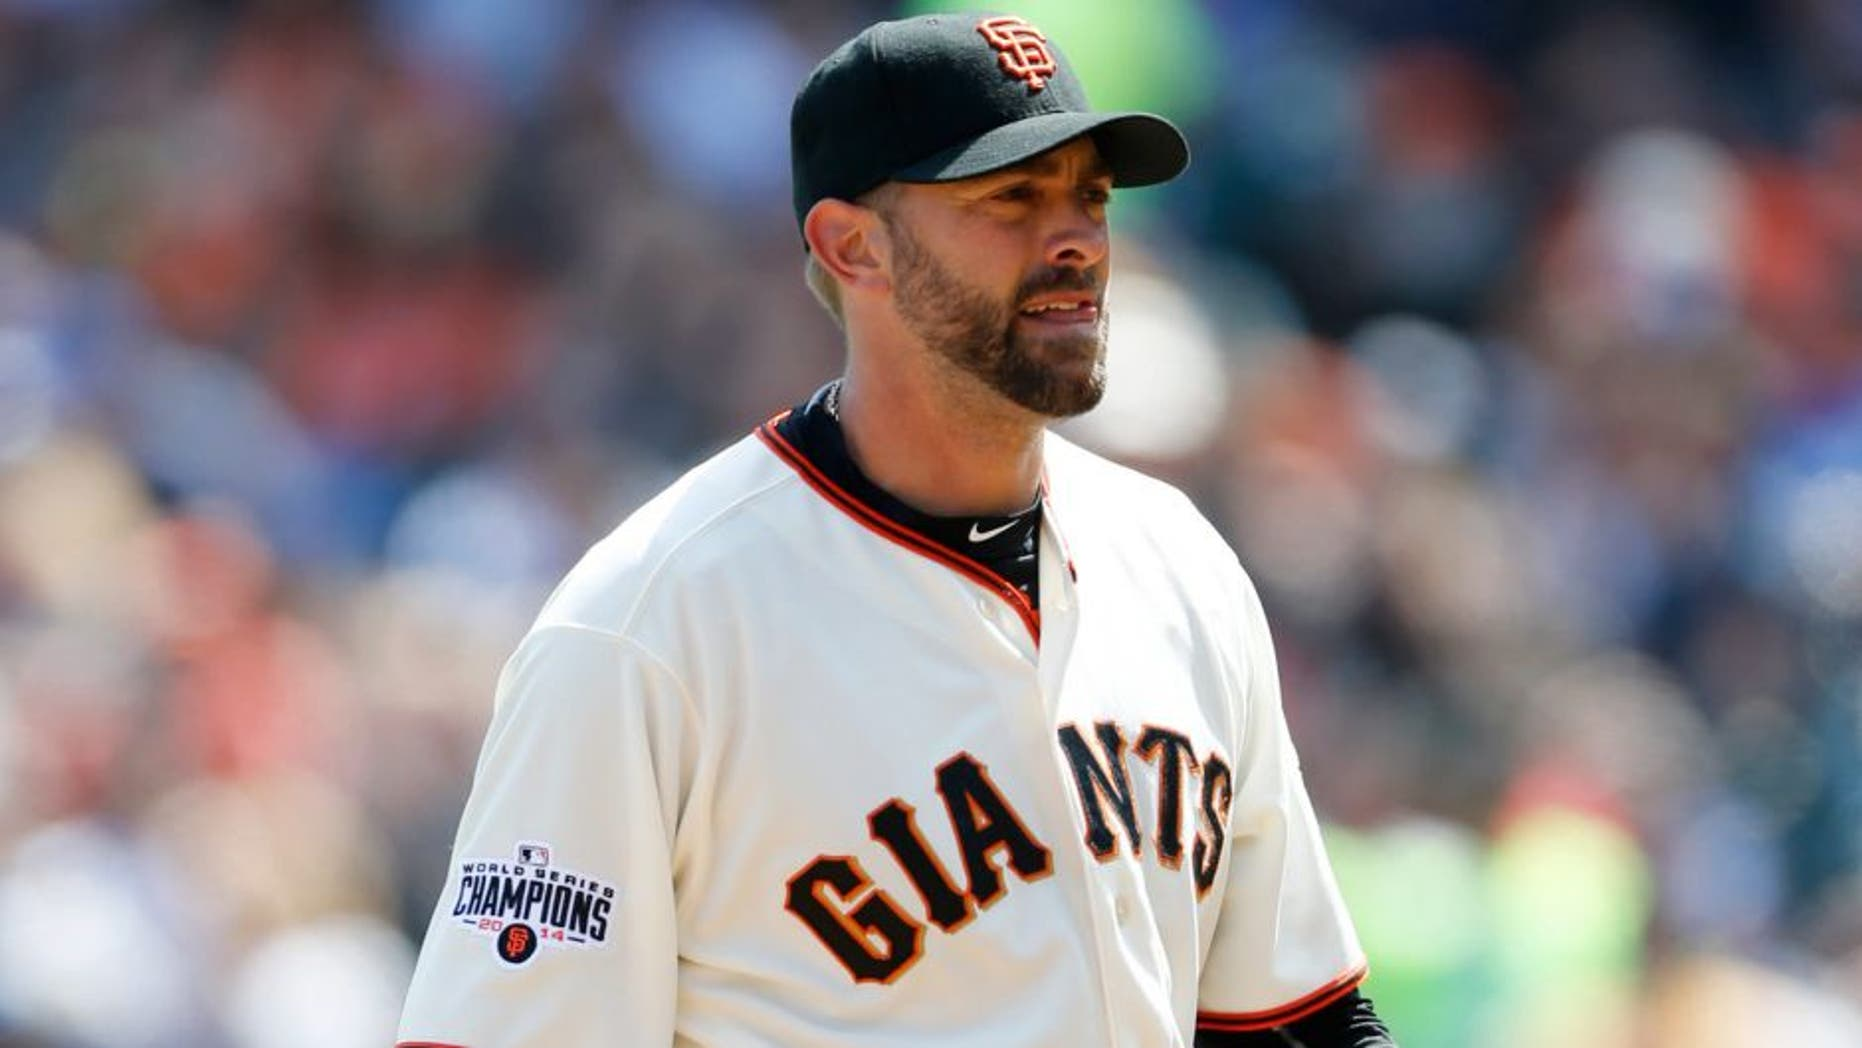 SAN FRANCISCO, CA - APRIL 23: Jeremy Affeldt #41 of the San Francisco Giants stands on the field during the game against the Los Angeles Dodgers at AT&T Park on April 23, 2015 in San Francisco, California. The Giants defeated the Dodgers 3-2. (Photo by Michael Zagaris/Getty Images)